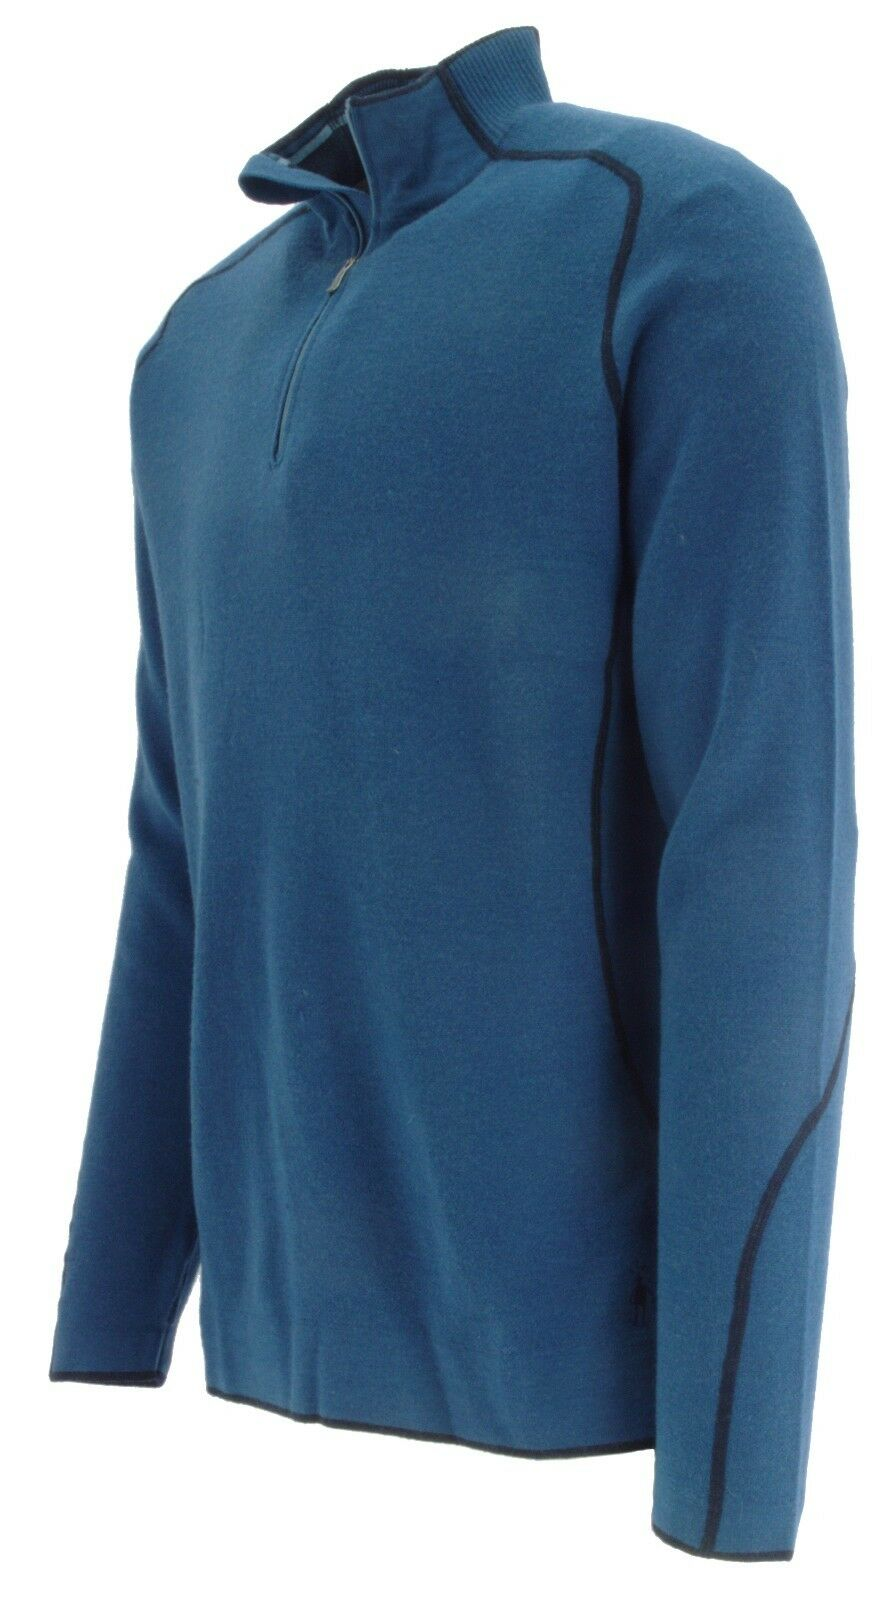 SMARTWOOL Herren MERINO WOOL TML LIGHT SPORT KNIT 1/4 ZIP SWEATER TOP MIDLAYER M